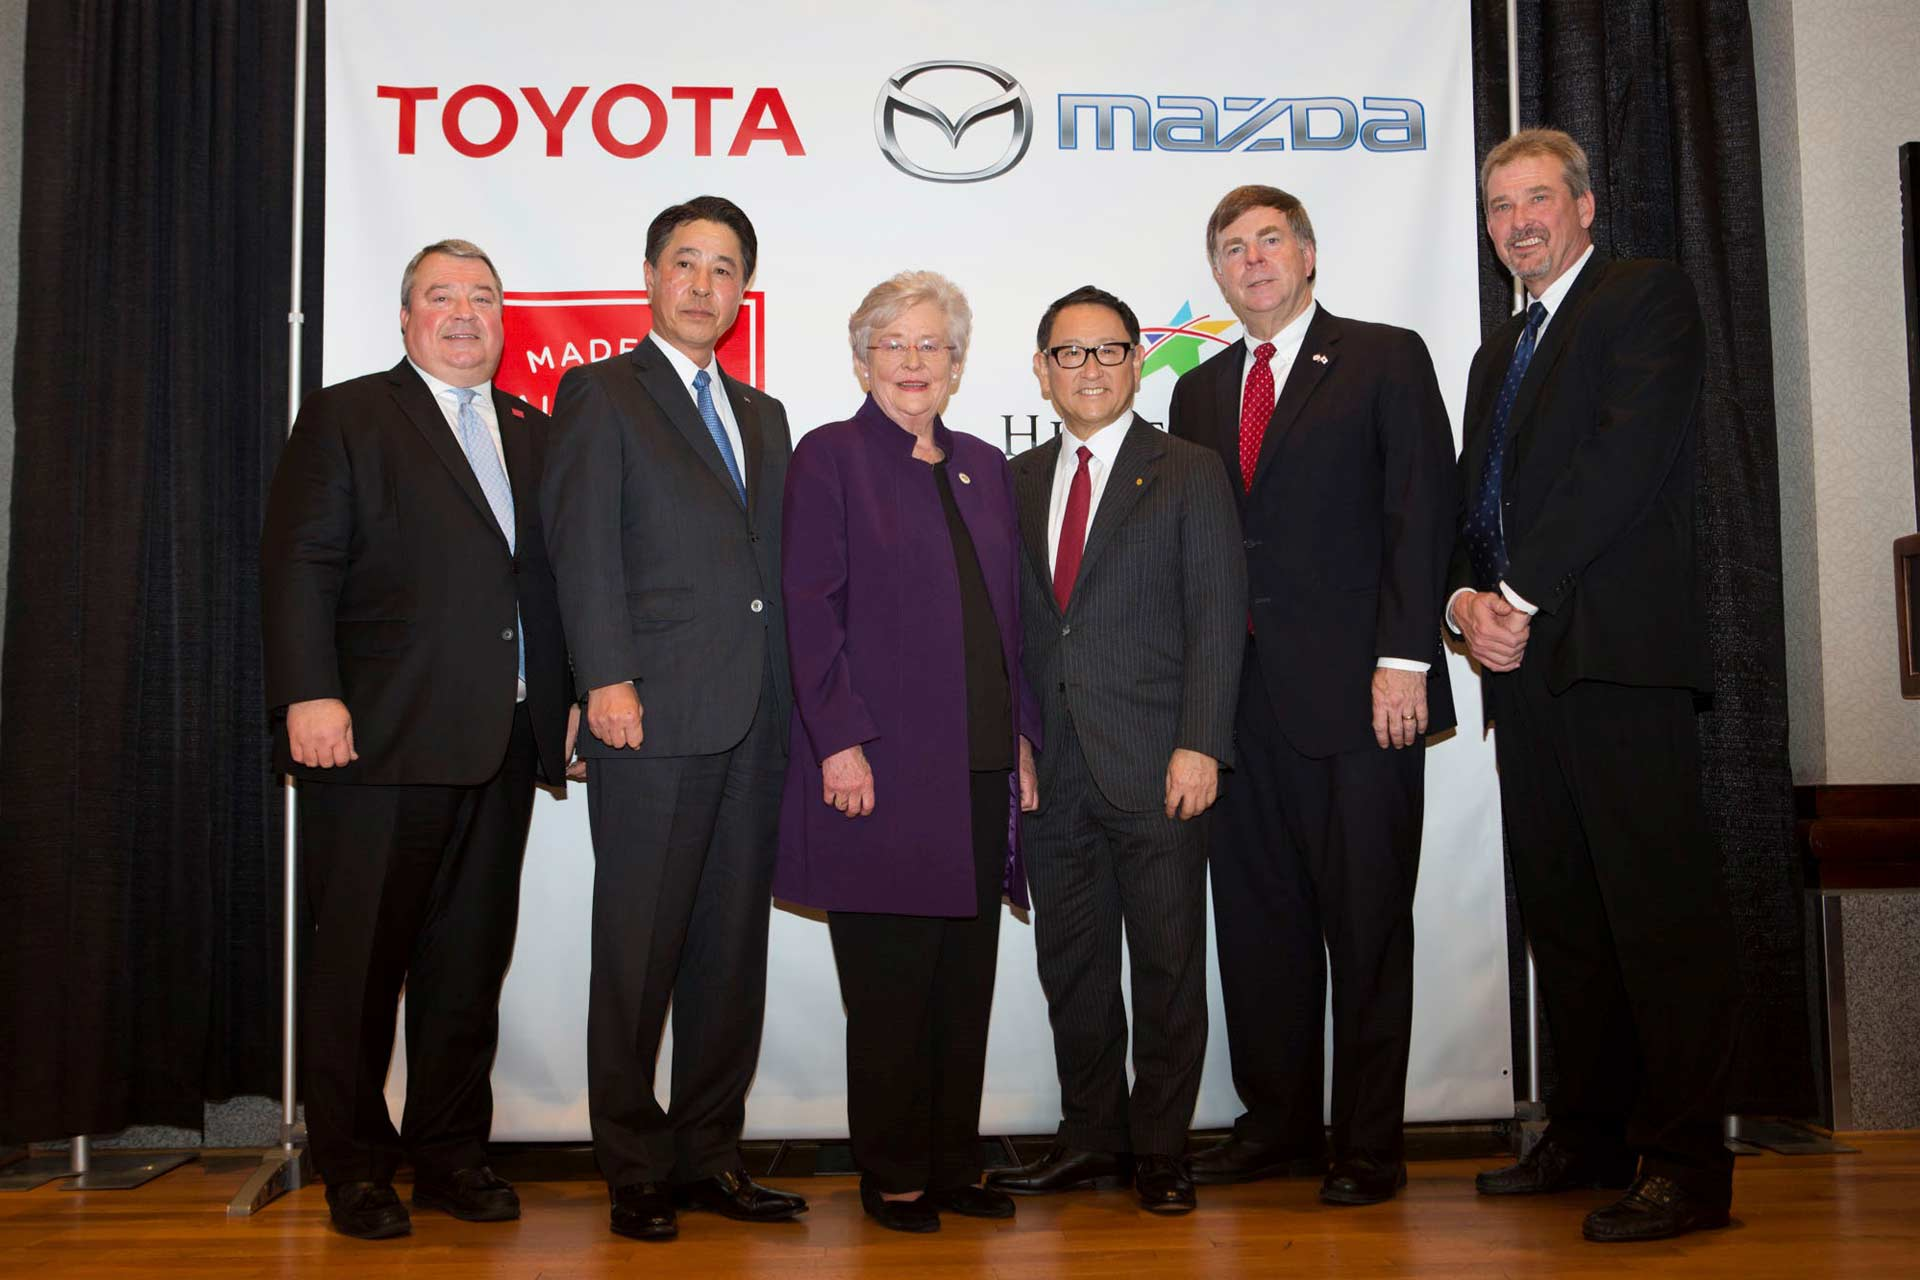 Toyota And Mazda To Invest 1 6 Billion For New Facility